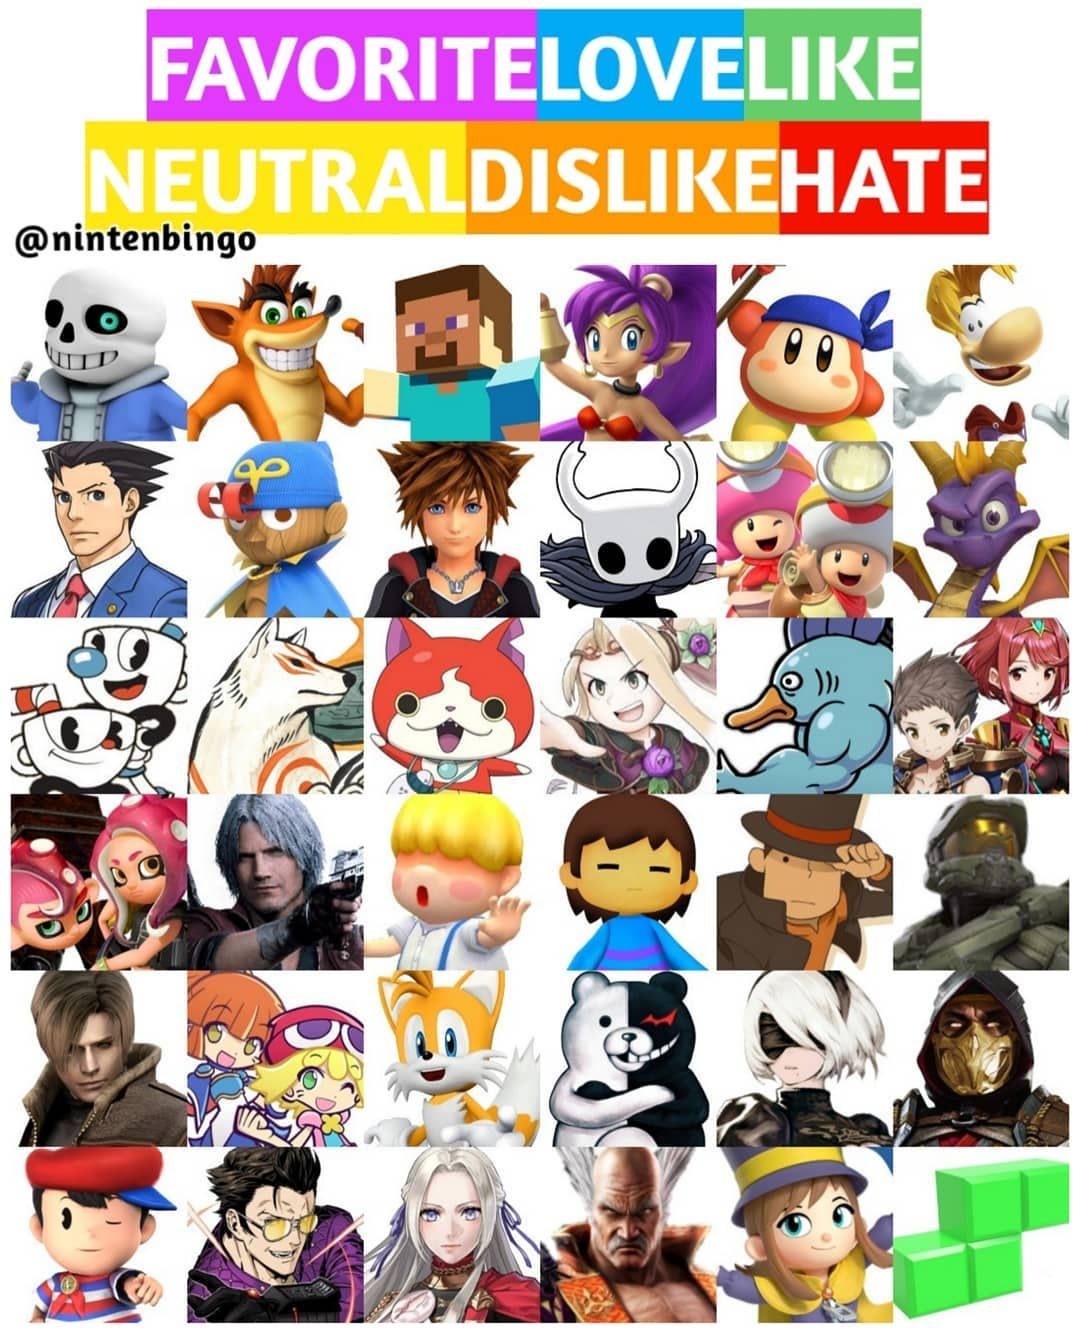 Super Smash Bros Ultimate Most Wanted Dlc Fighters Voted By My Followers No Assist Trophies Voted By My Follower Super Smash Bros Smash Bros Bros